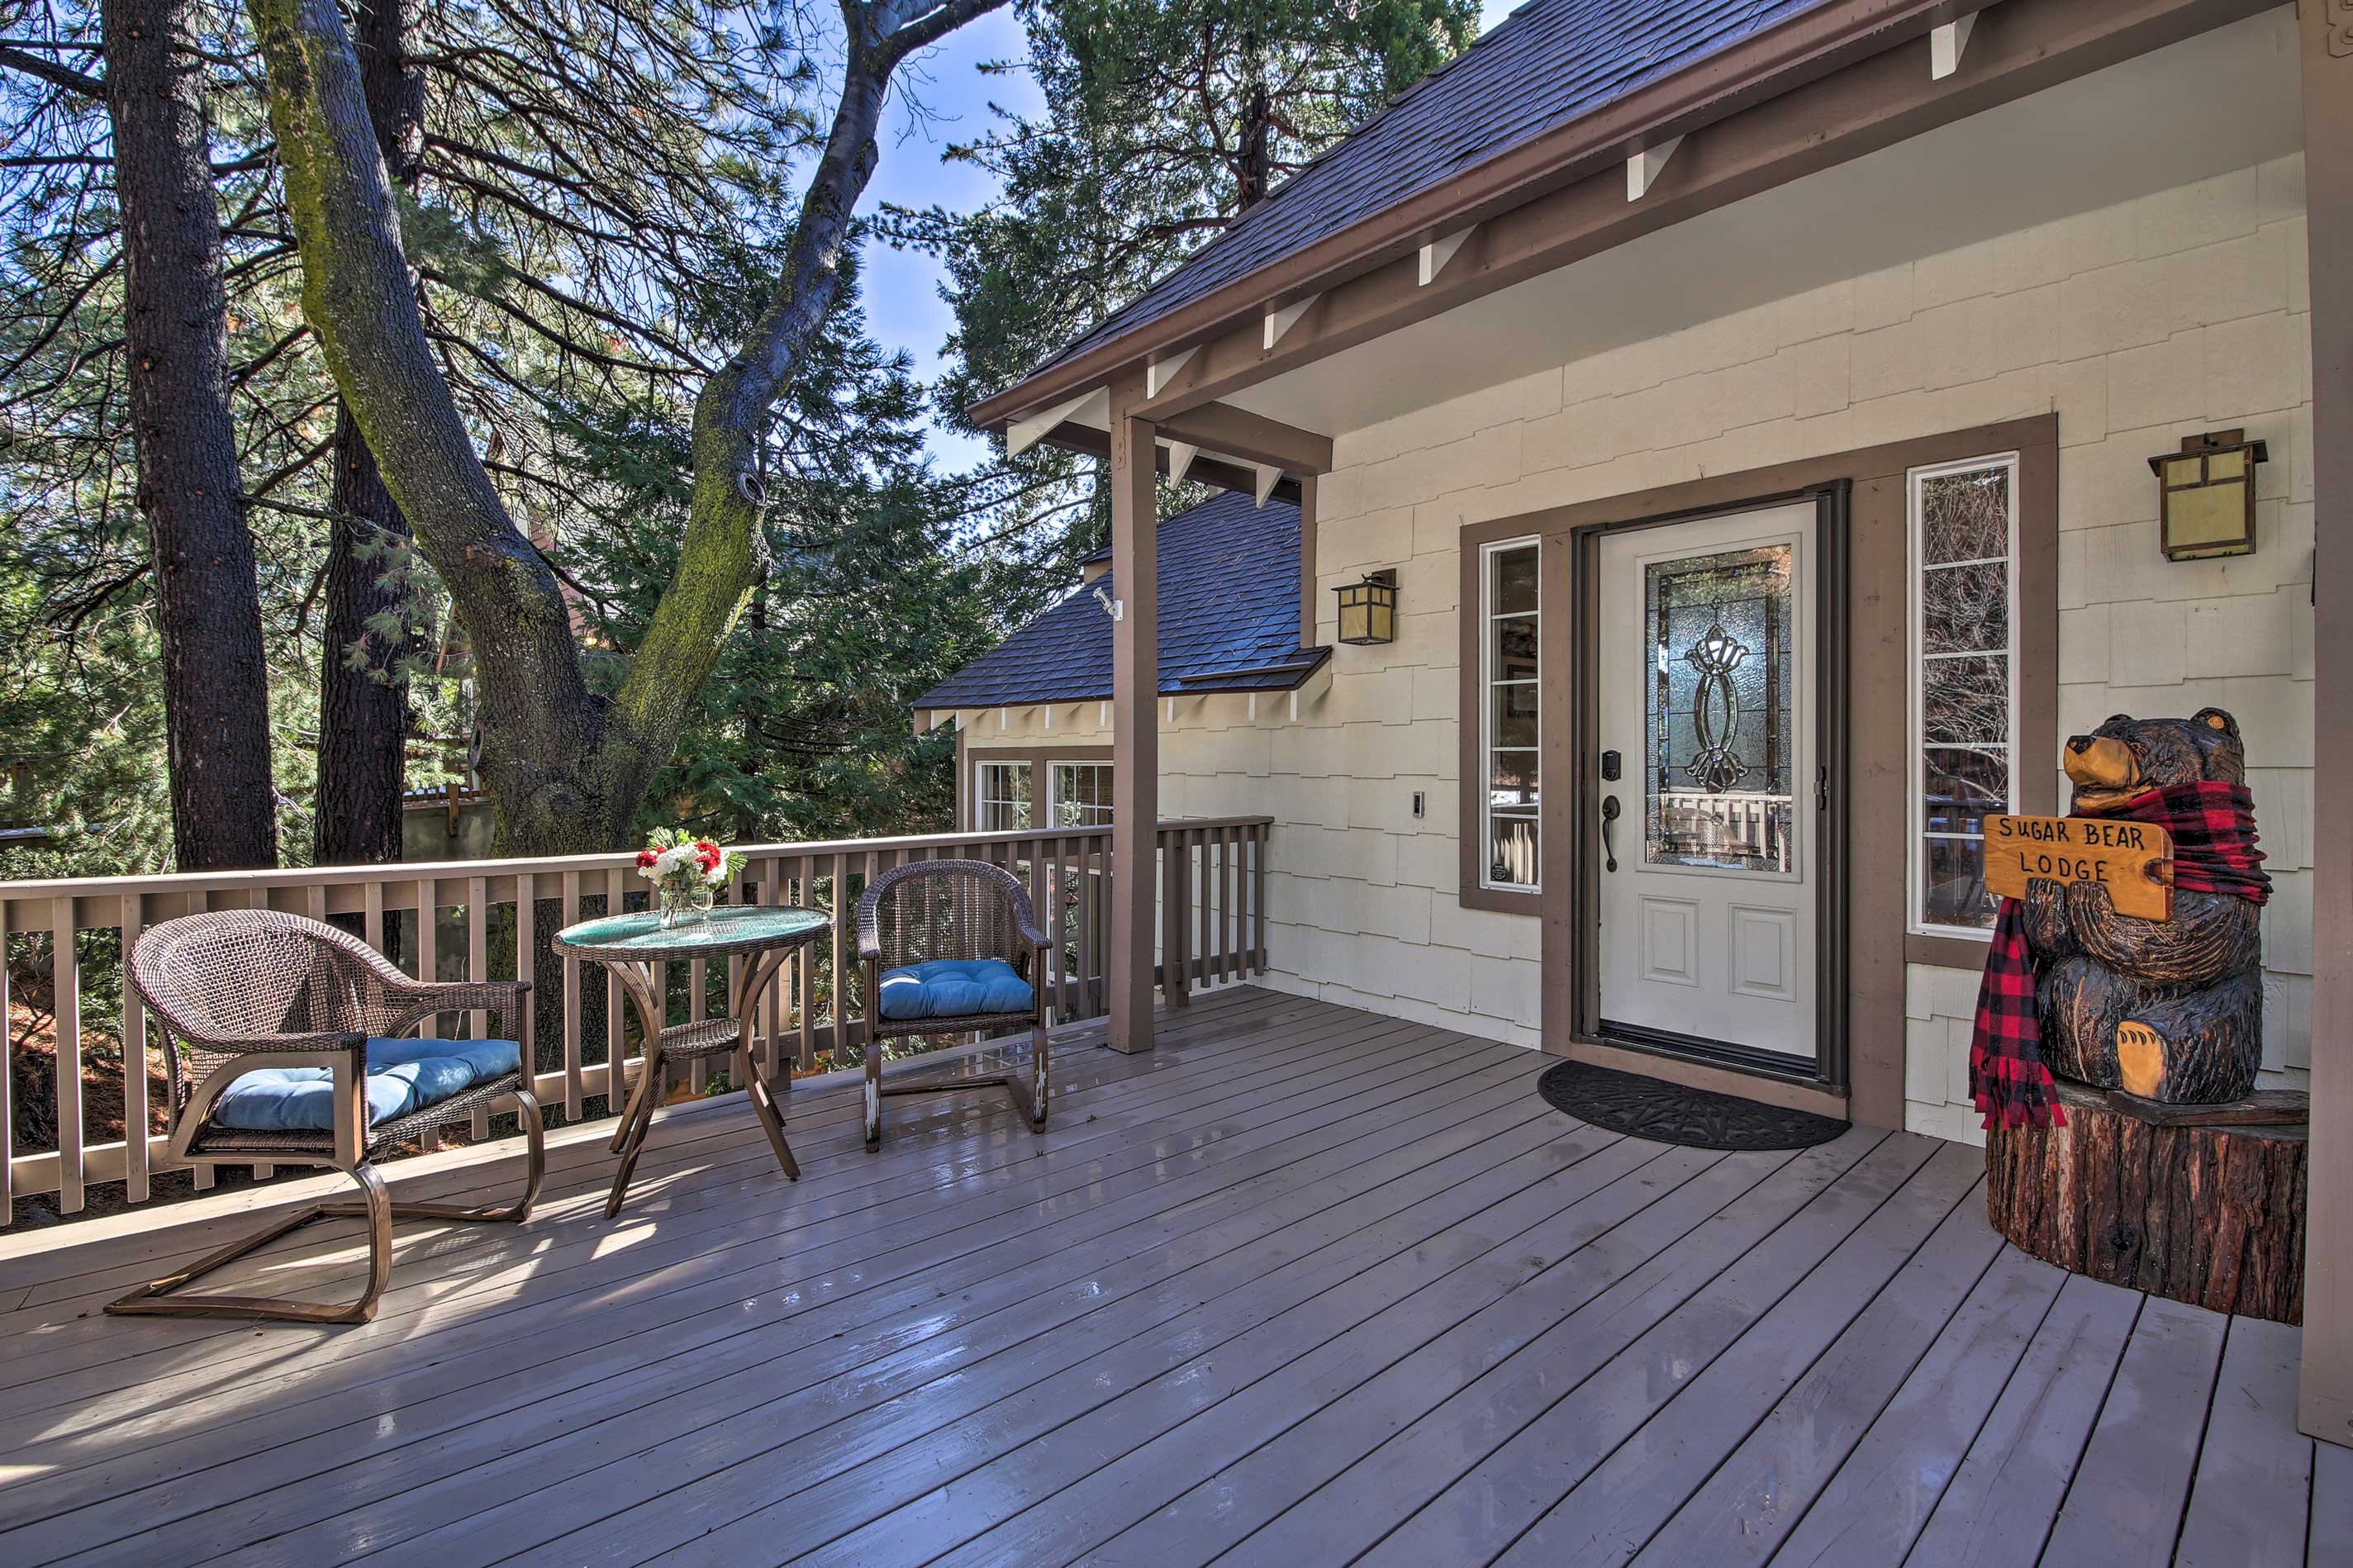 Call the 'Sugar Bear Lodge' your new home-away-from-home!